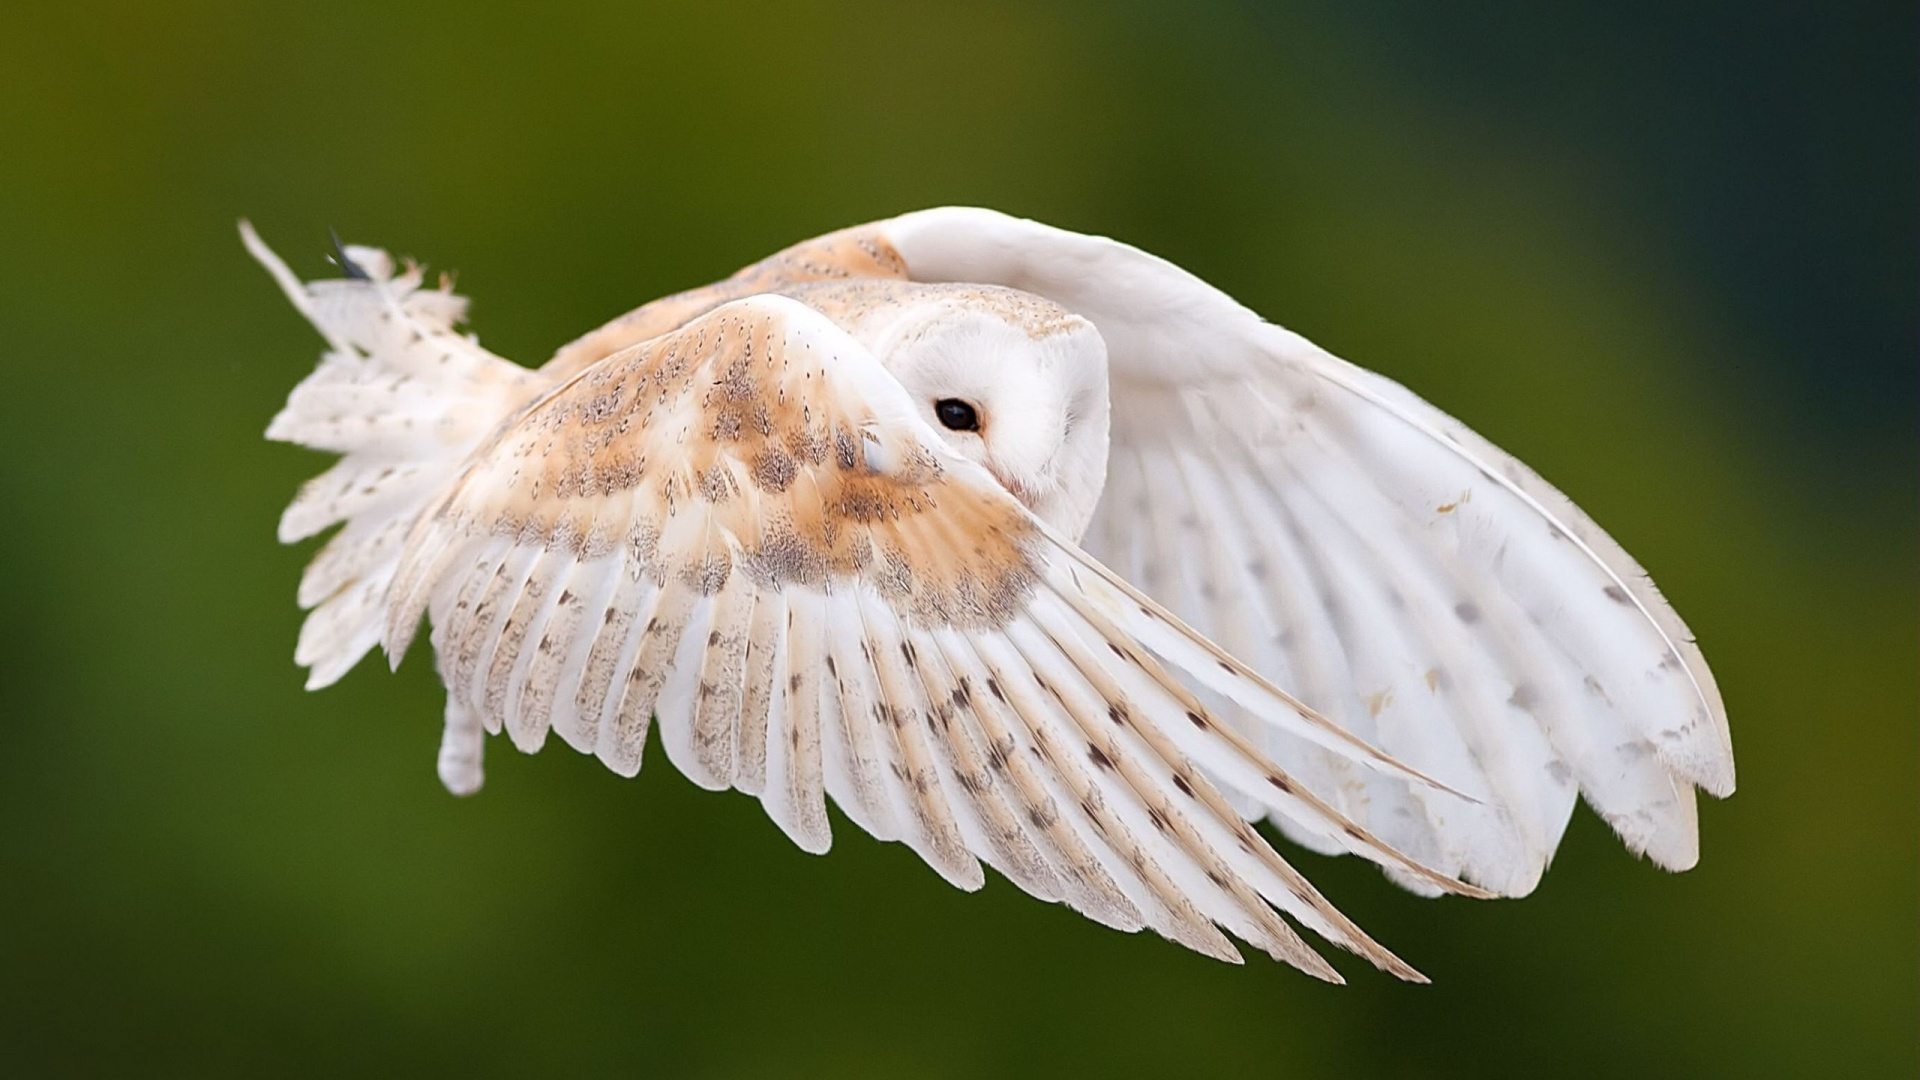 Owl Flying In Sky Wallpapers   1920x1080   426211 1920x1080